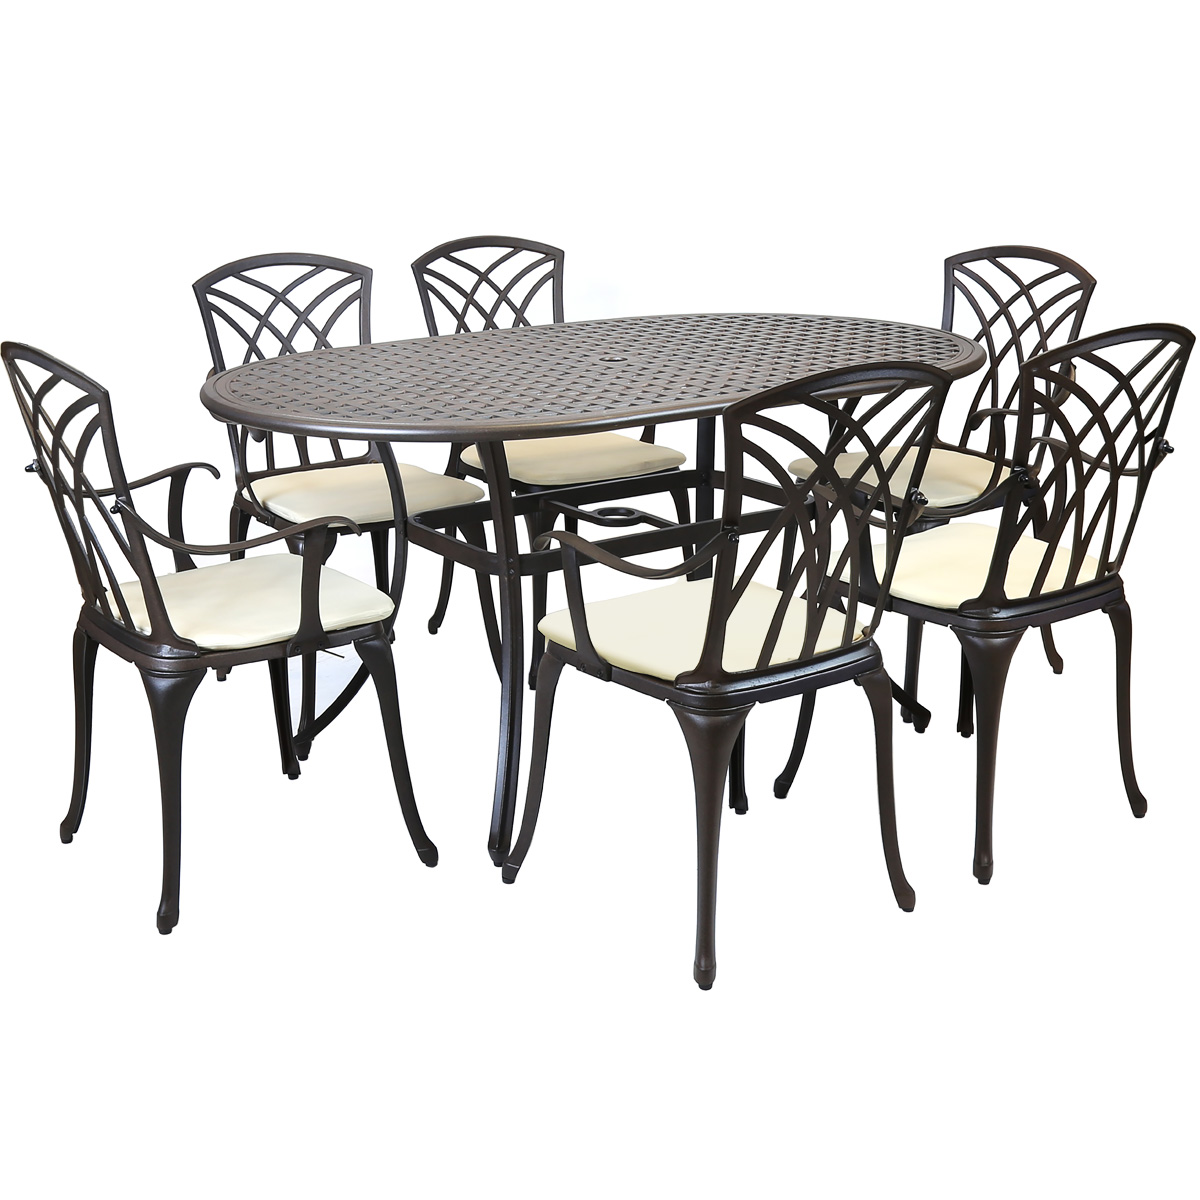 Metal Cast Aluminium 7 Piece Garden Furniture Table Patio